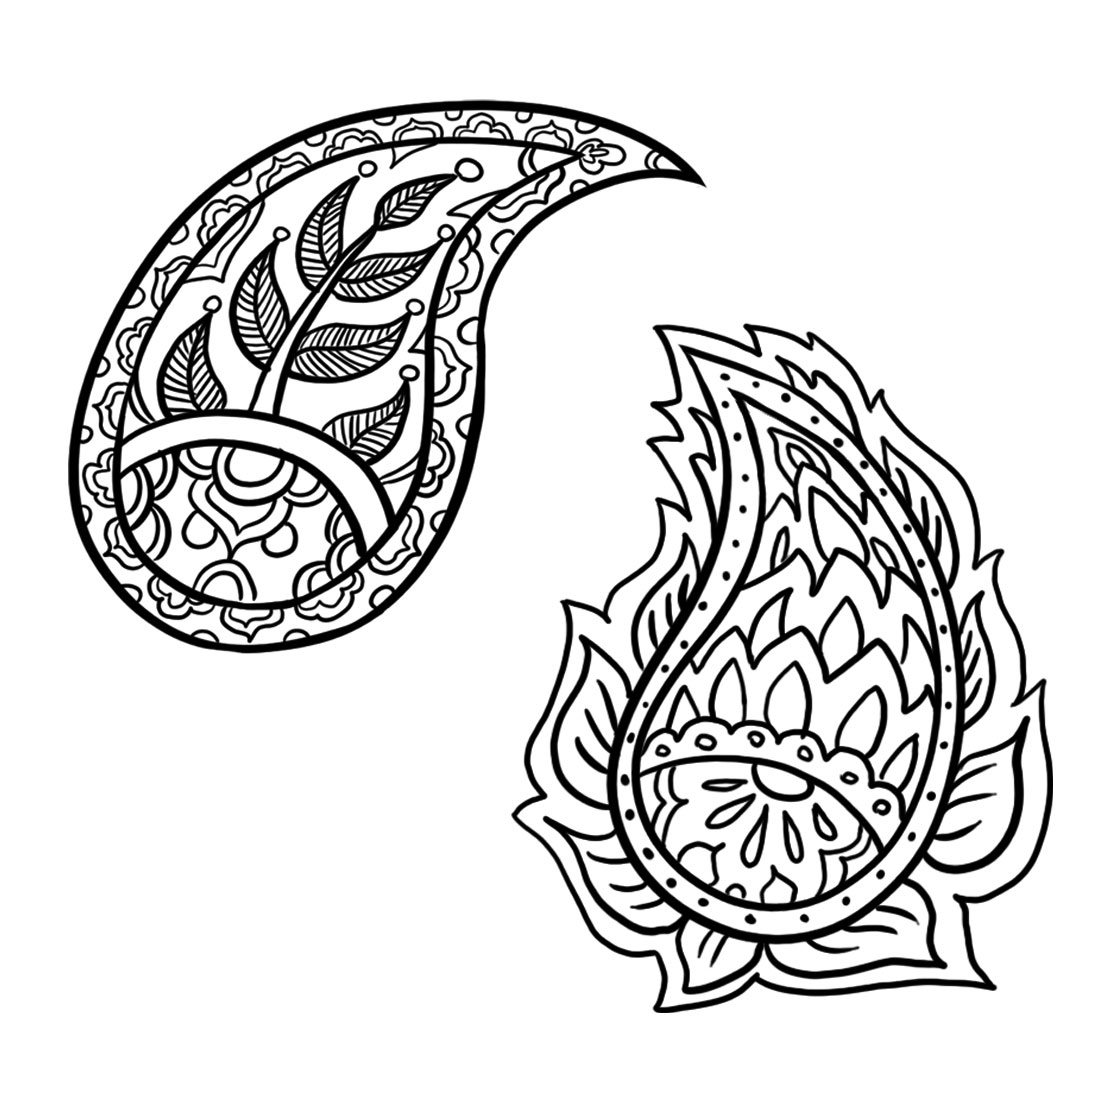 1100x1100 Cool Simple Drawing Designs How To Draw A Paisley Design 6 Steps